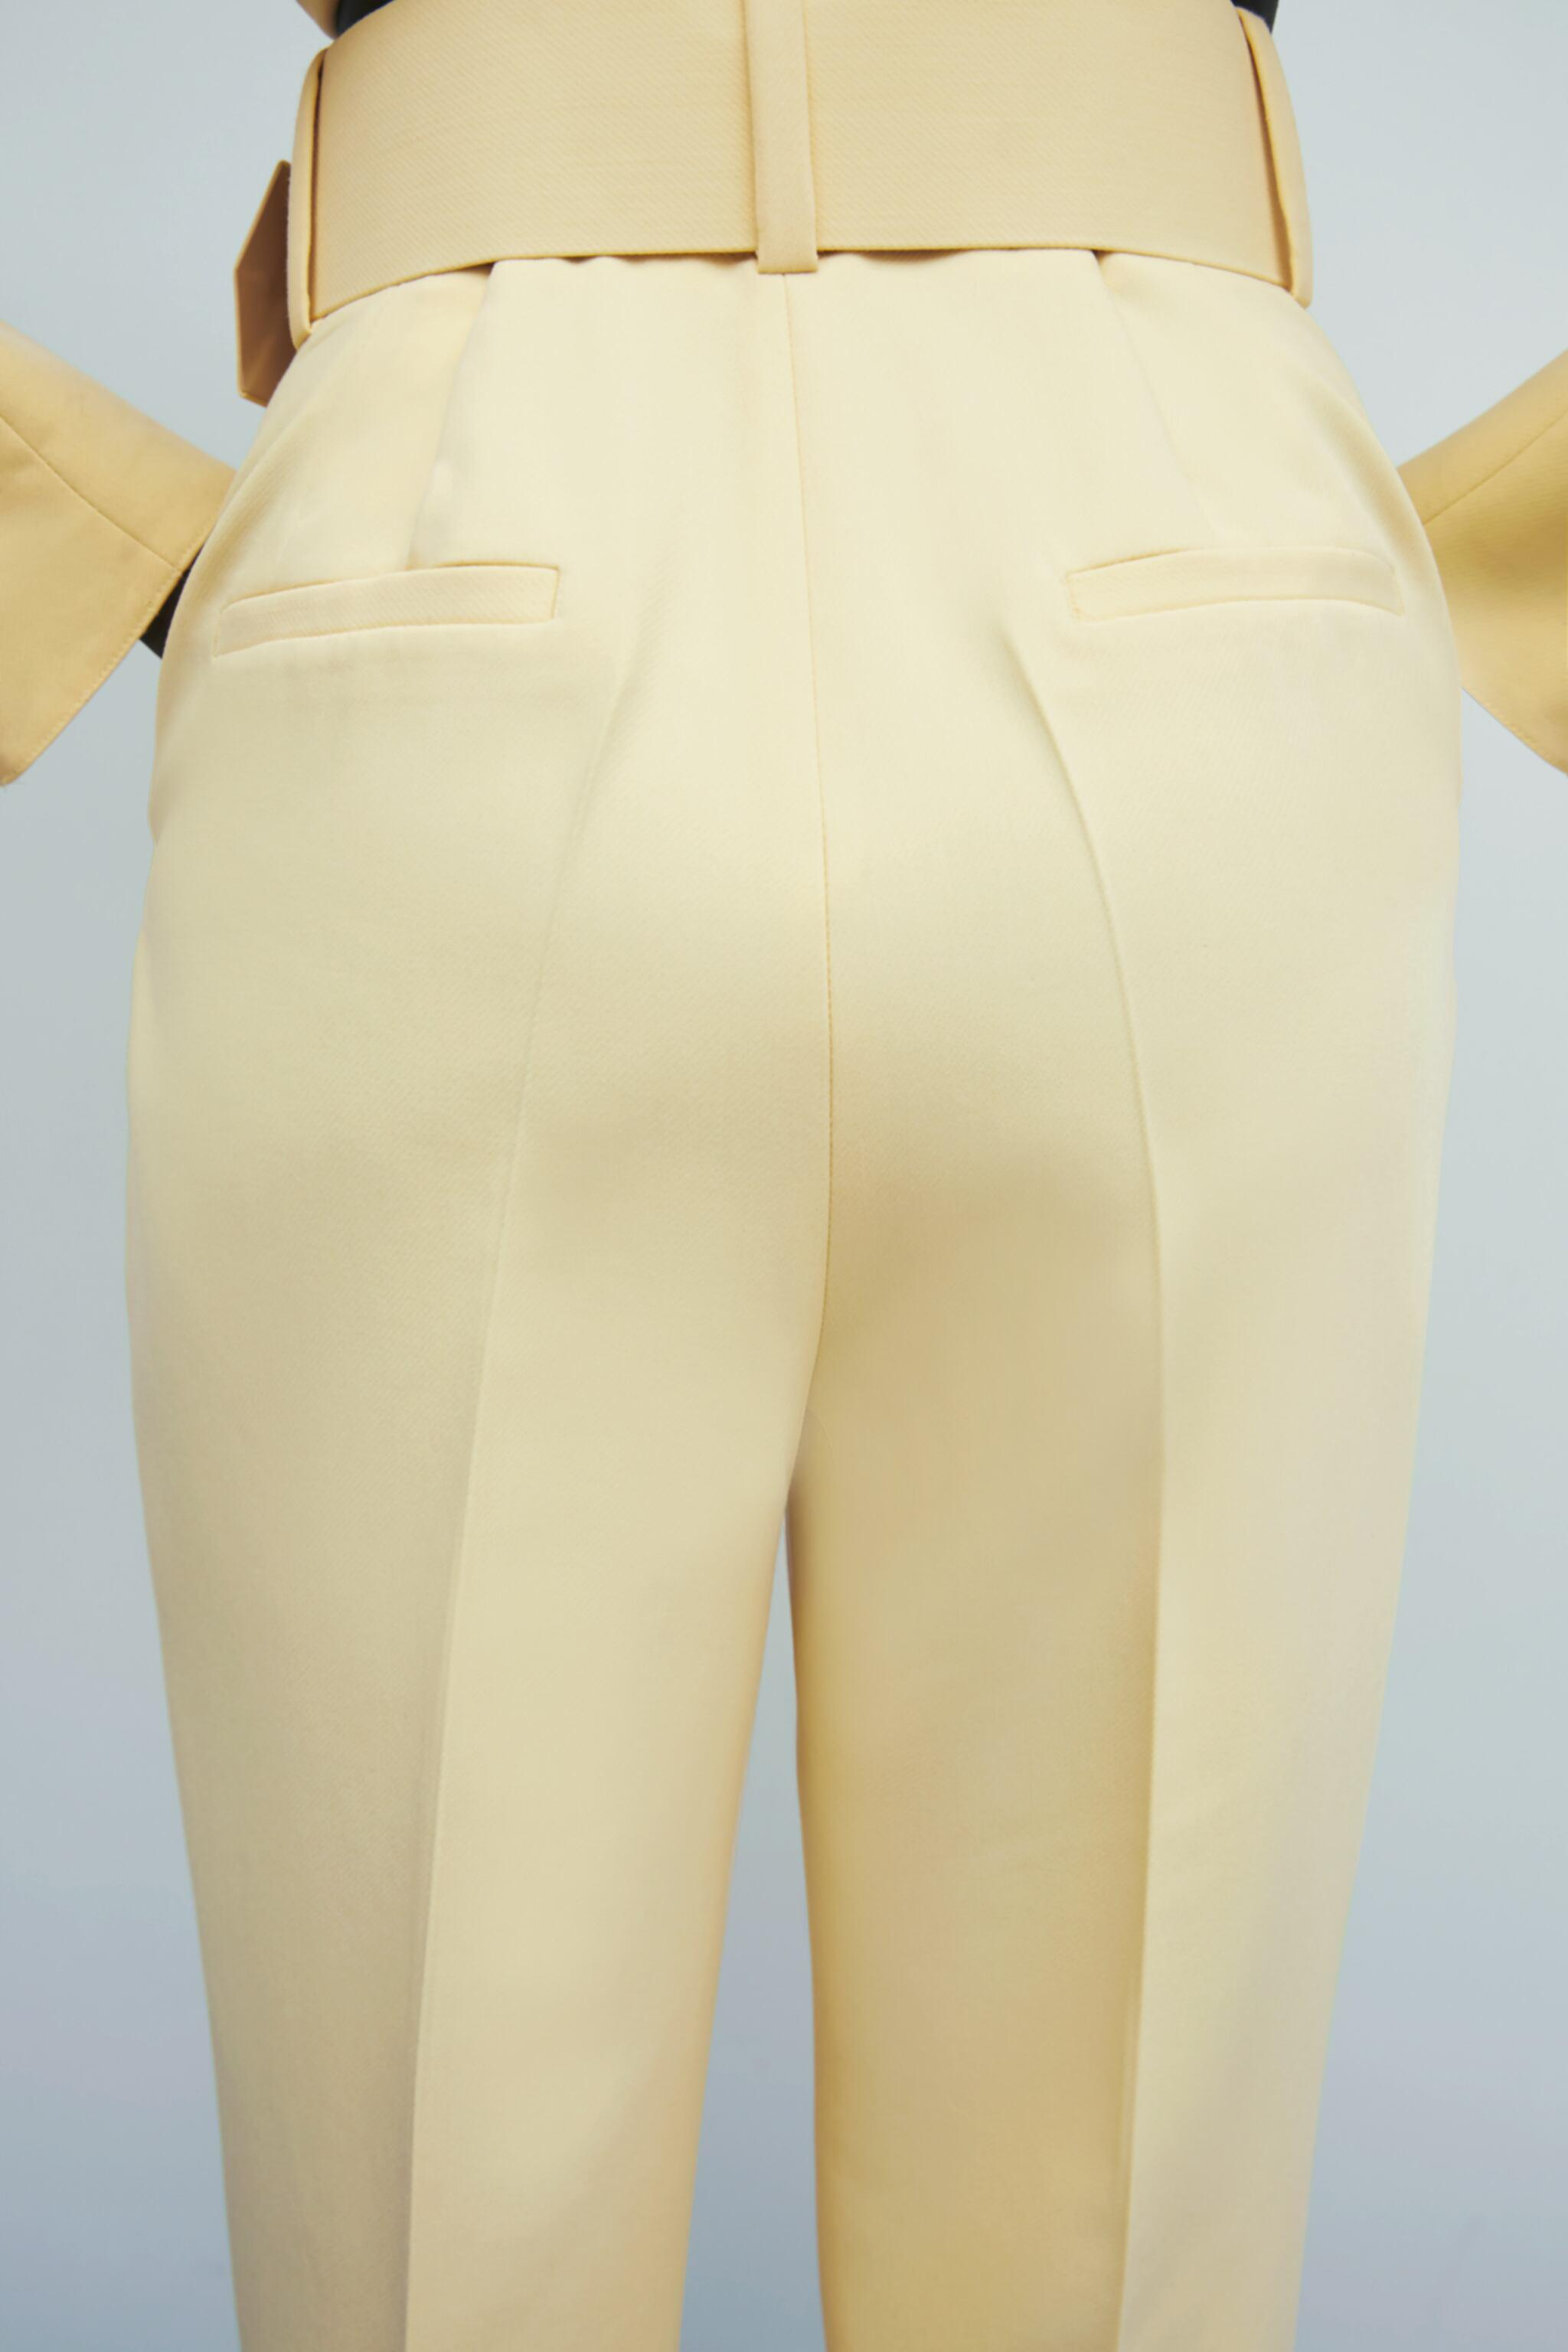 HIGH-WAISTED BELTED PANTS 3